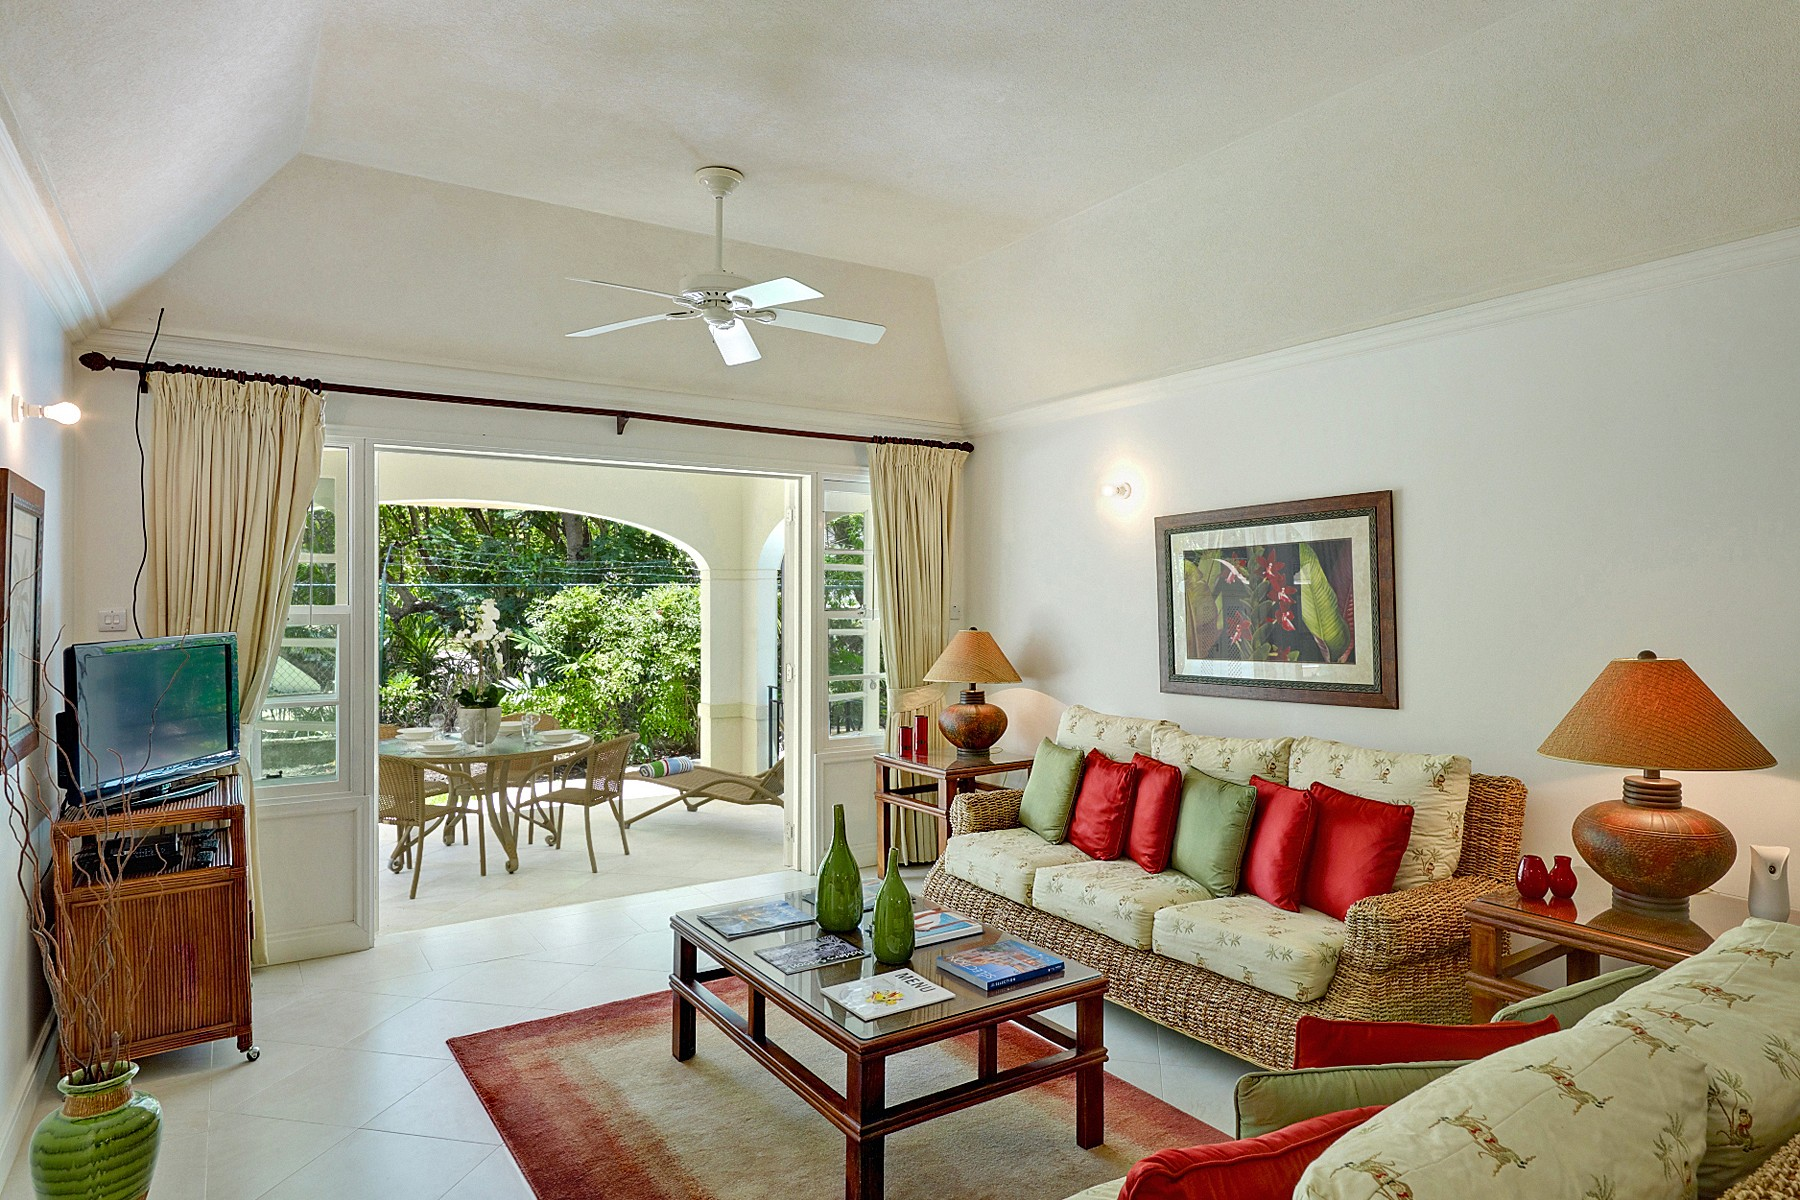 Other Residential for Sale at The Falls Villa 5 Other Saint James, Saint James, Barbados